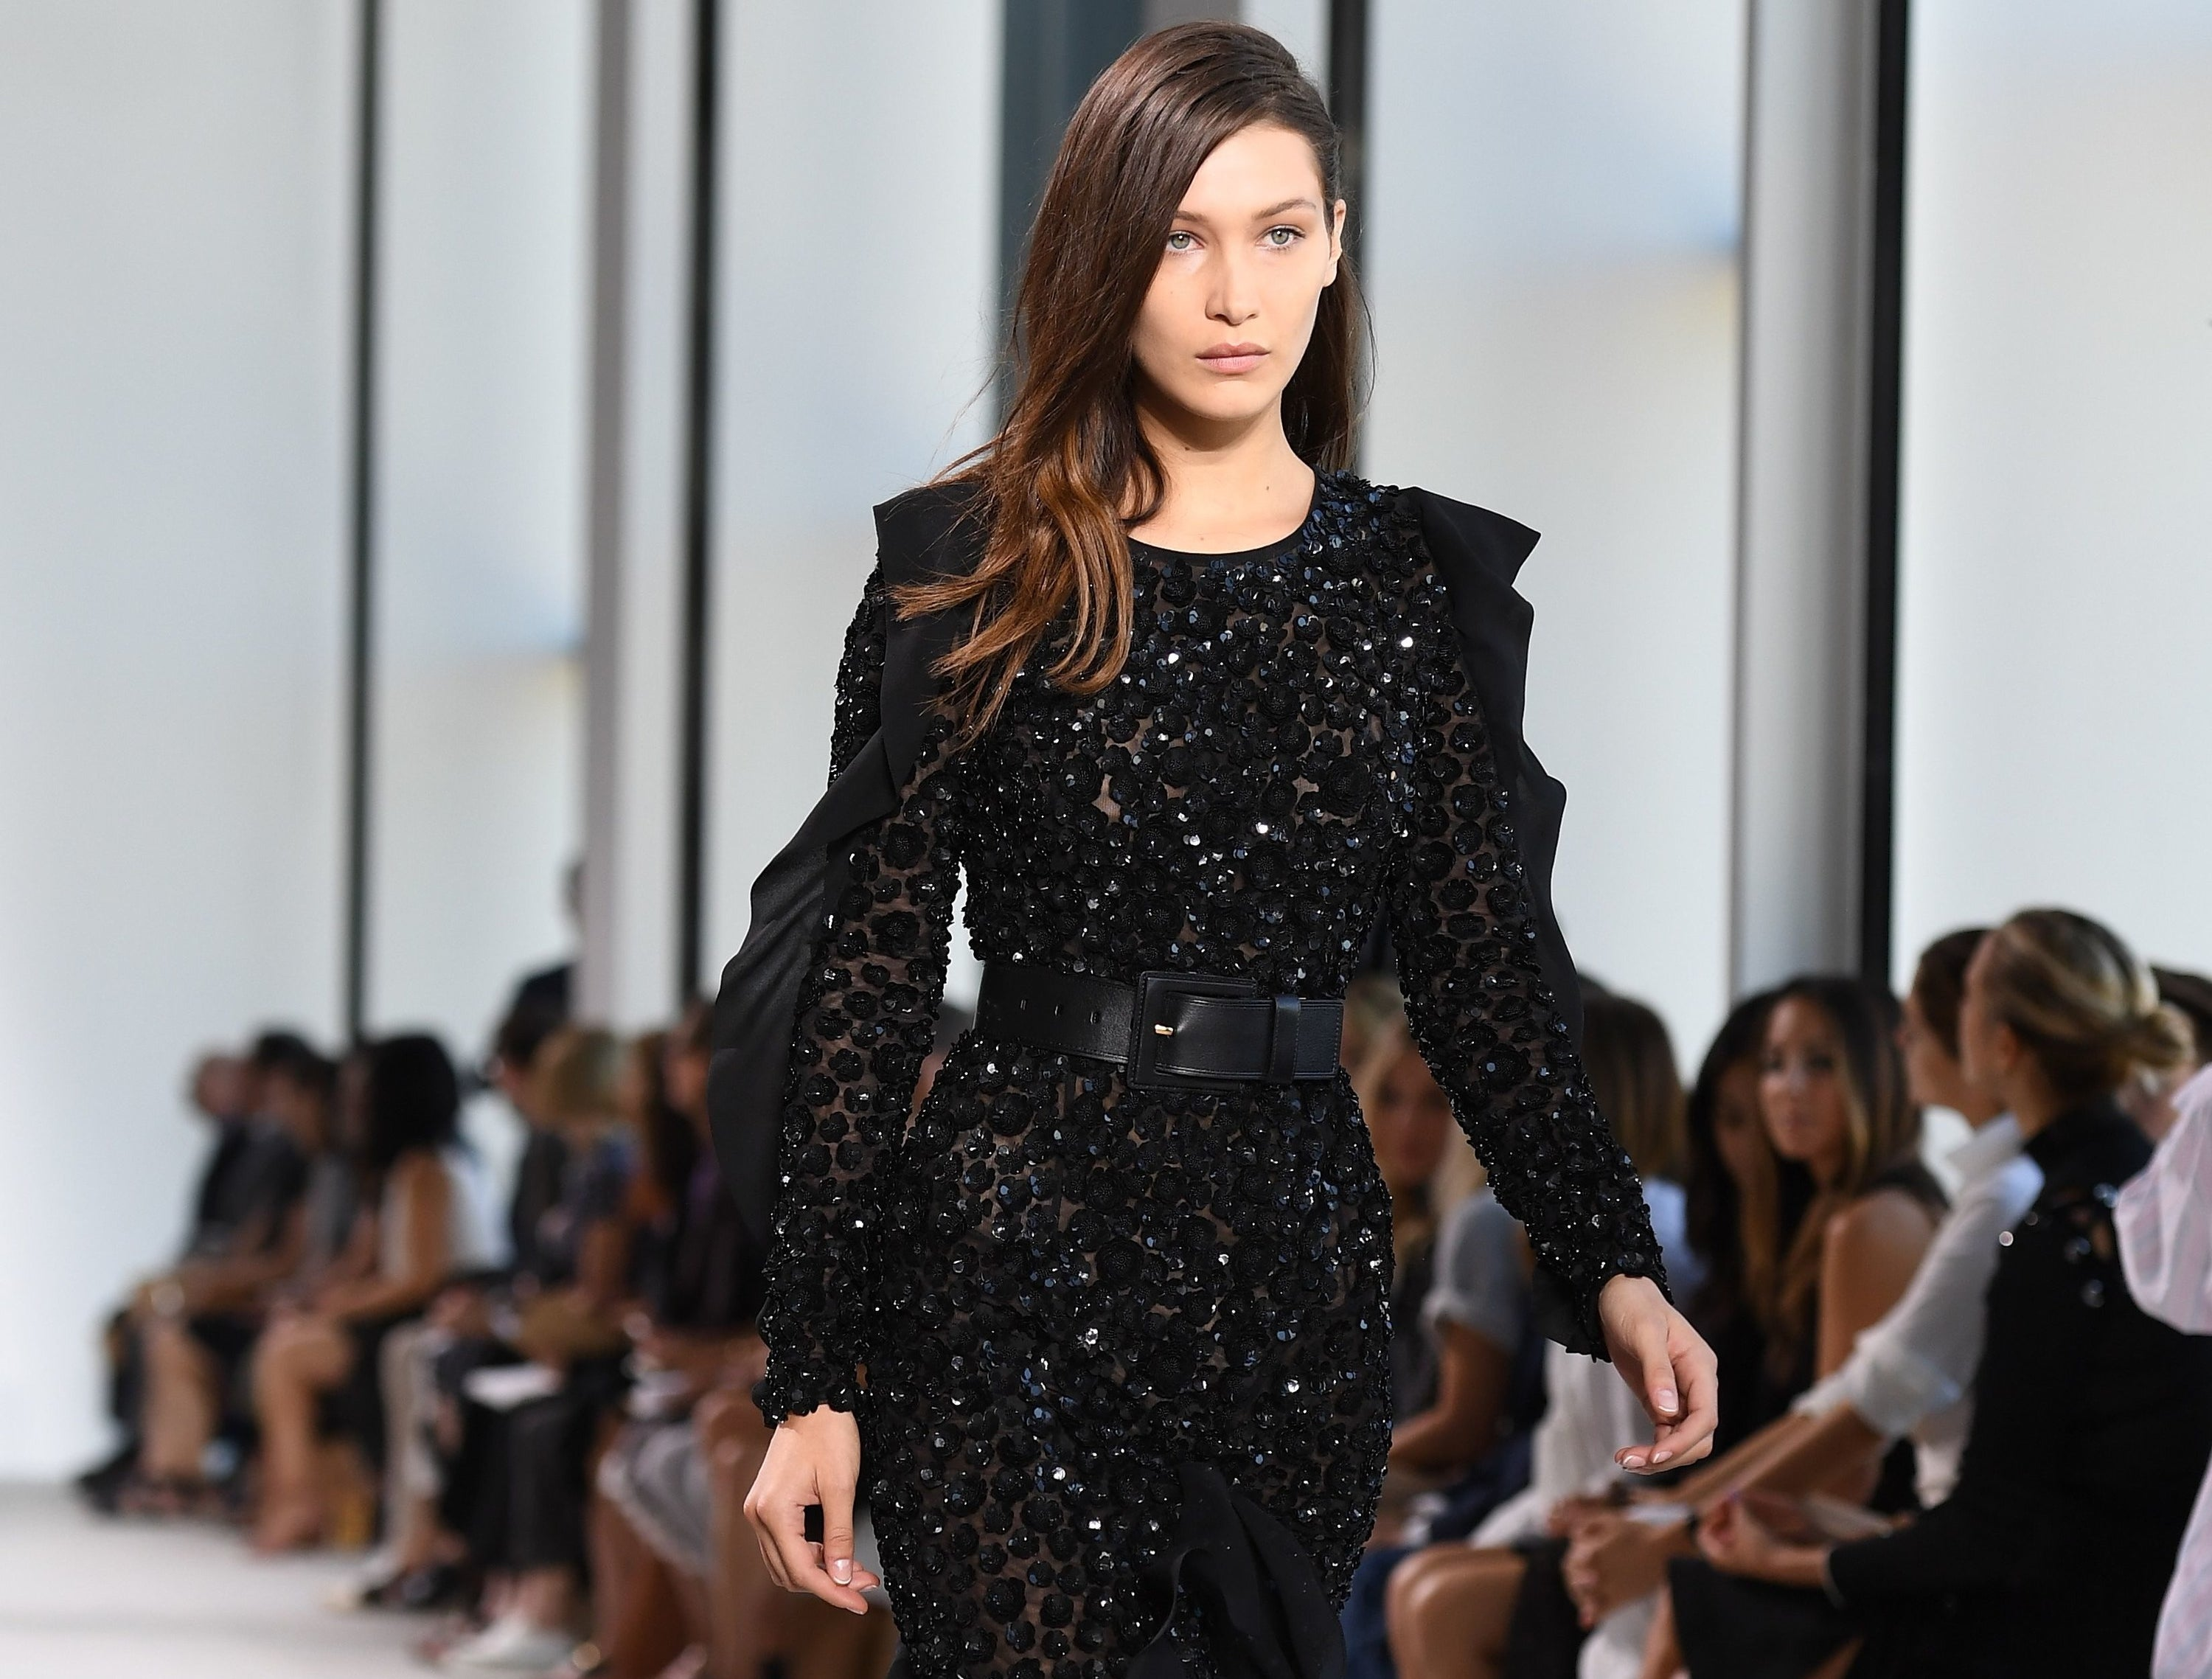 Bella walks in the Kors show in a black sequined long sleeve dress cinched with a black belt